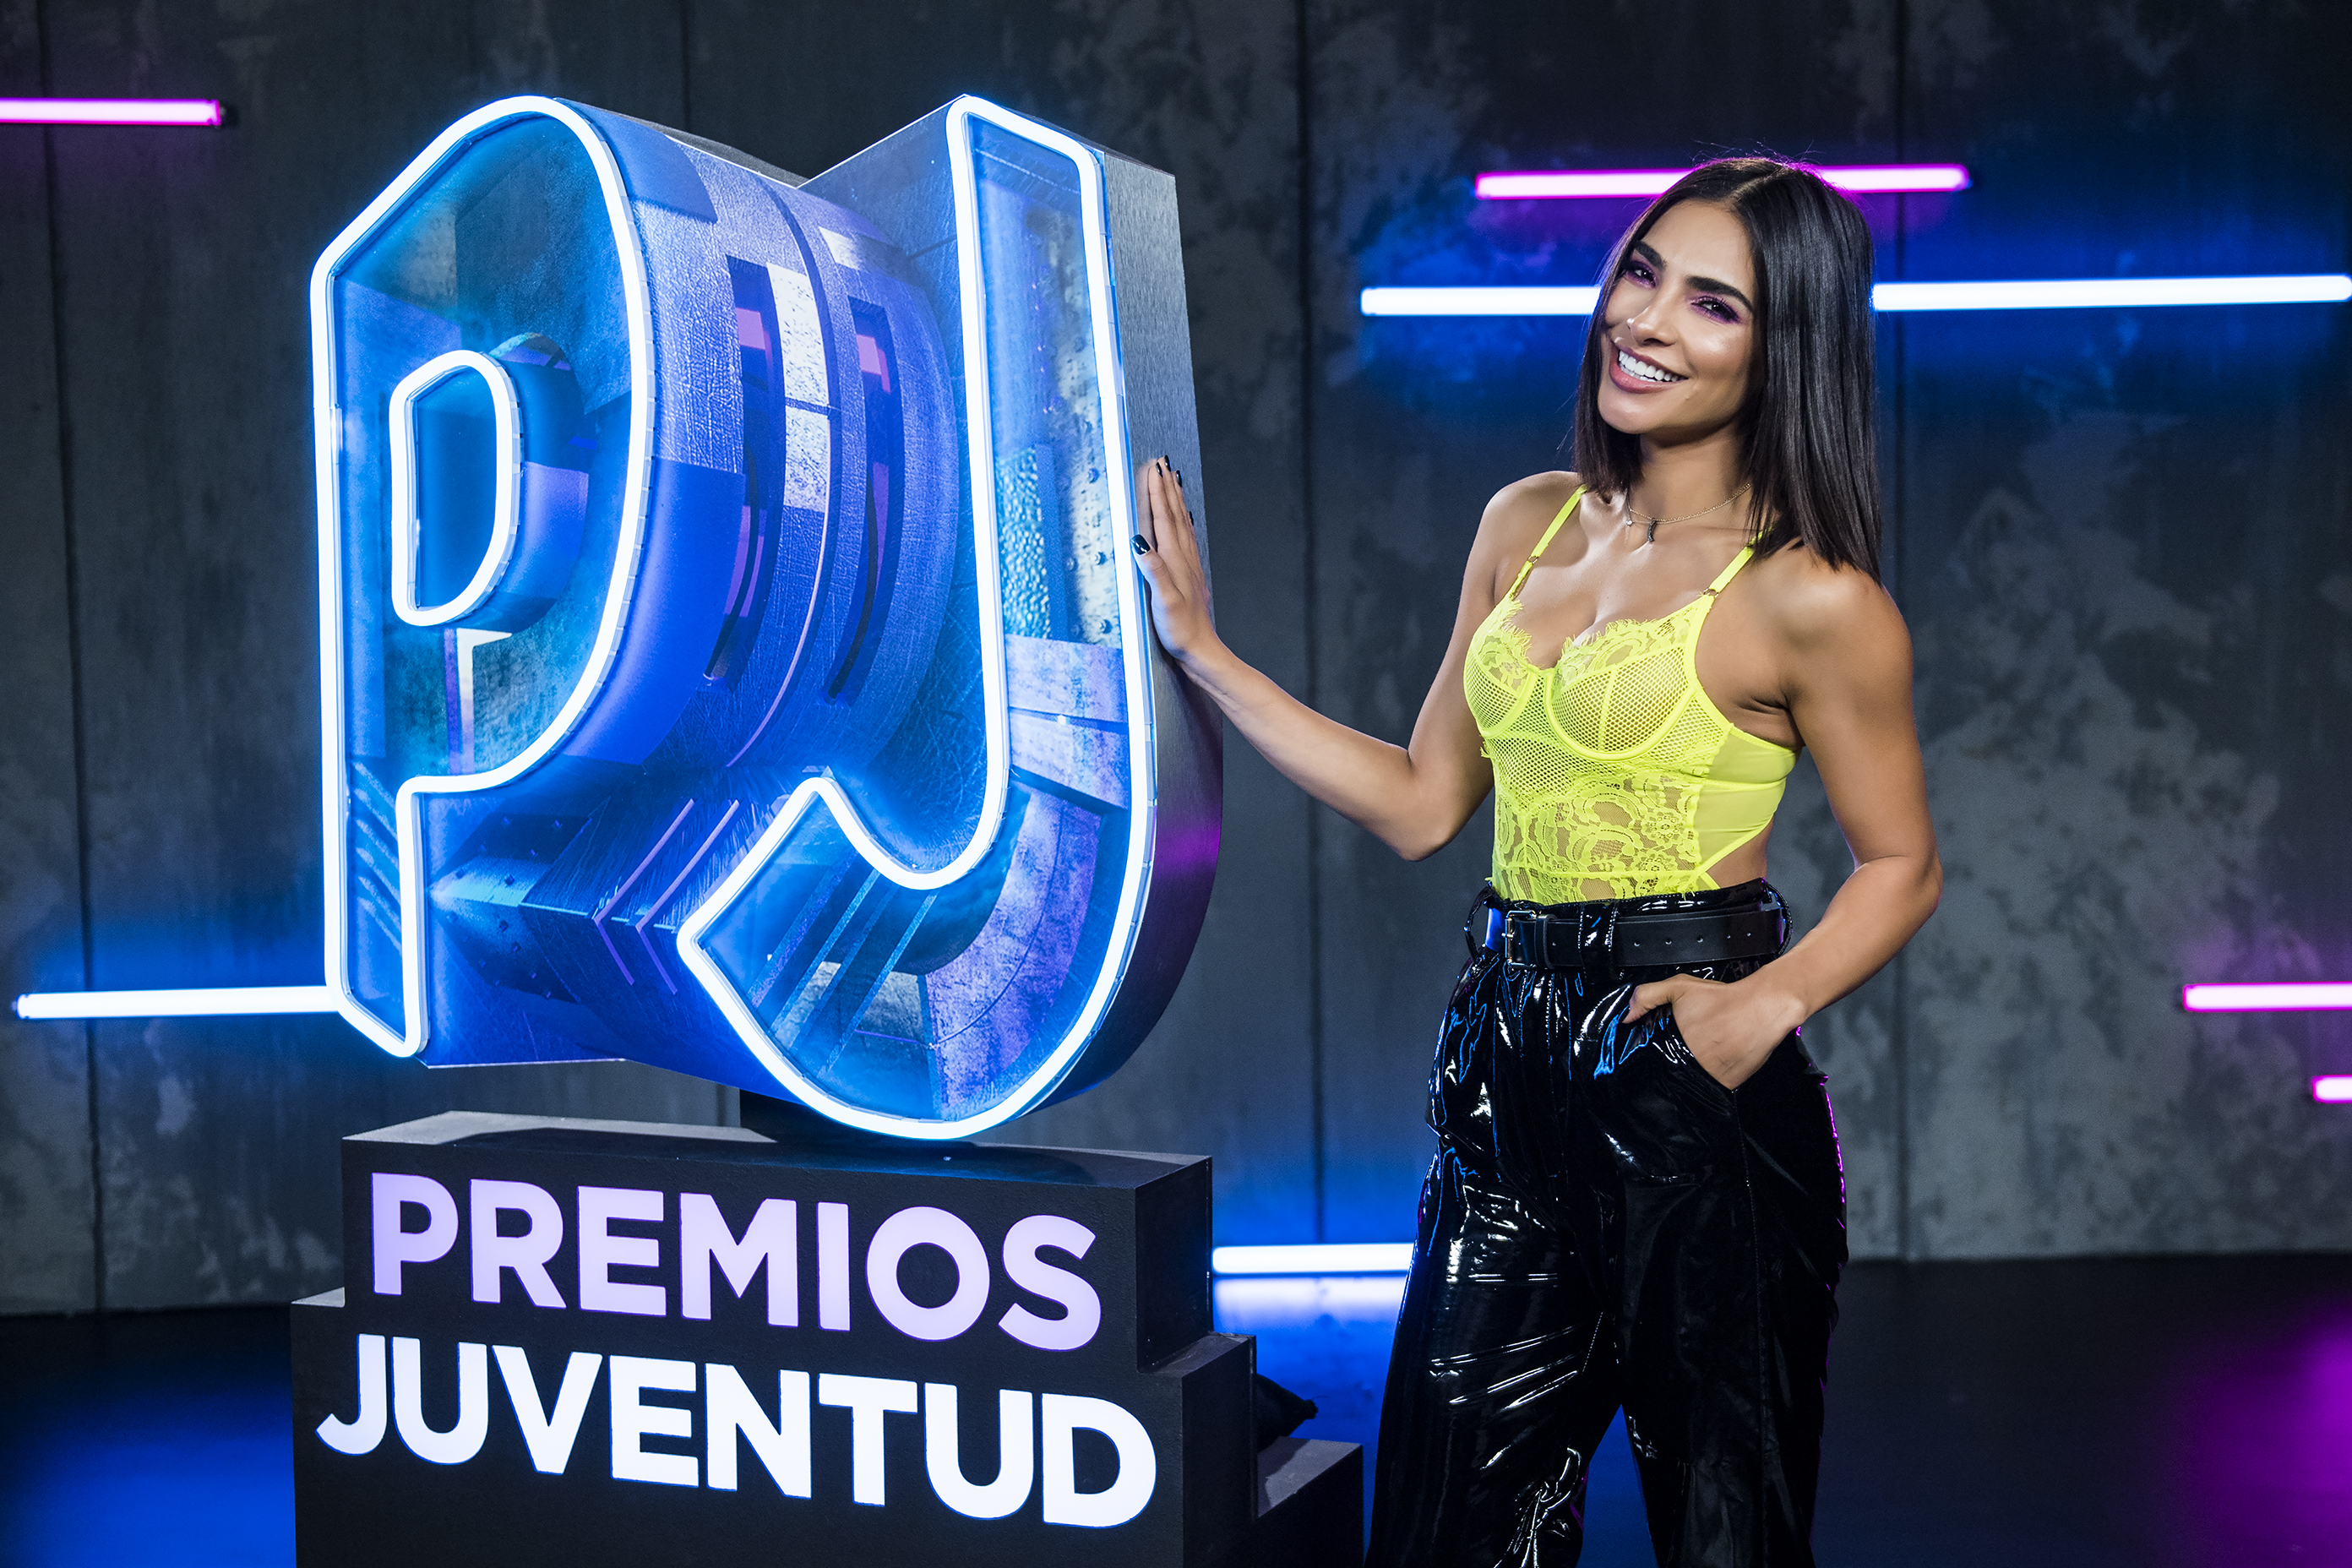 Photo of Premios Juventud 2019